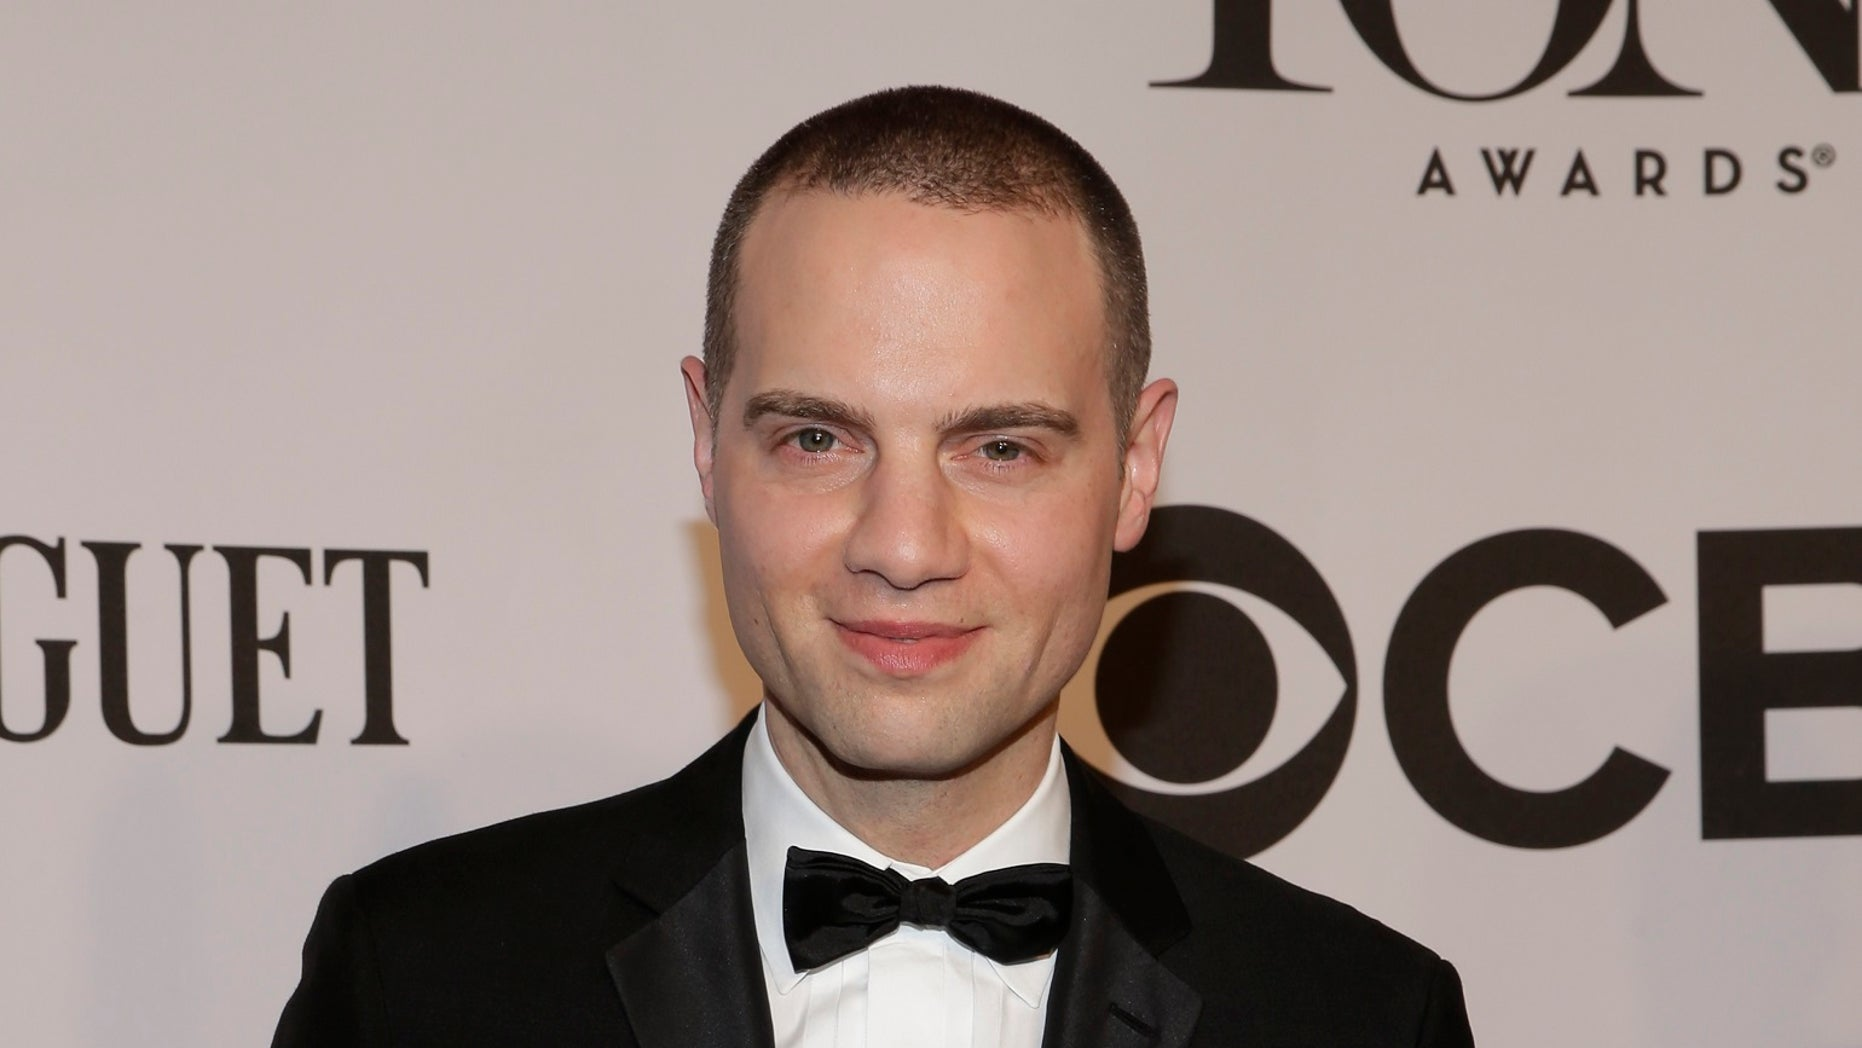 Broadway producer Jordan Roth launched a web series trashing President Trump, despite his family's close ties to him.